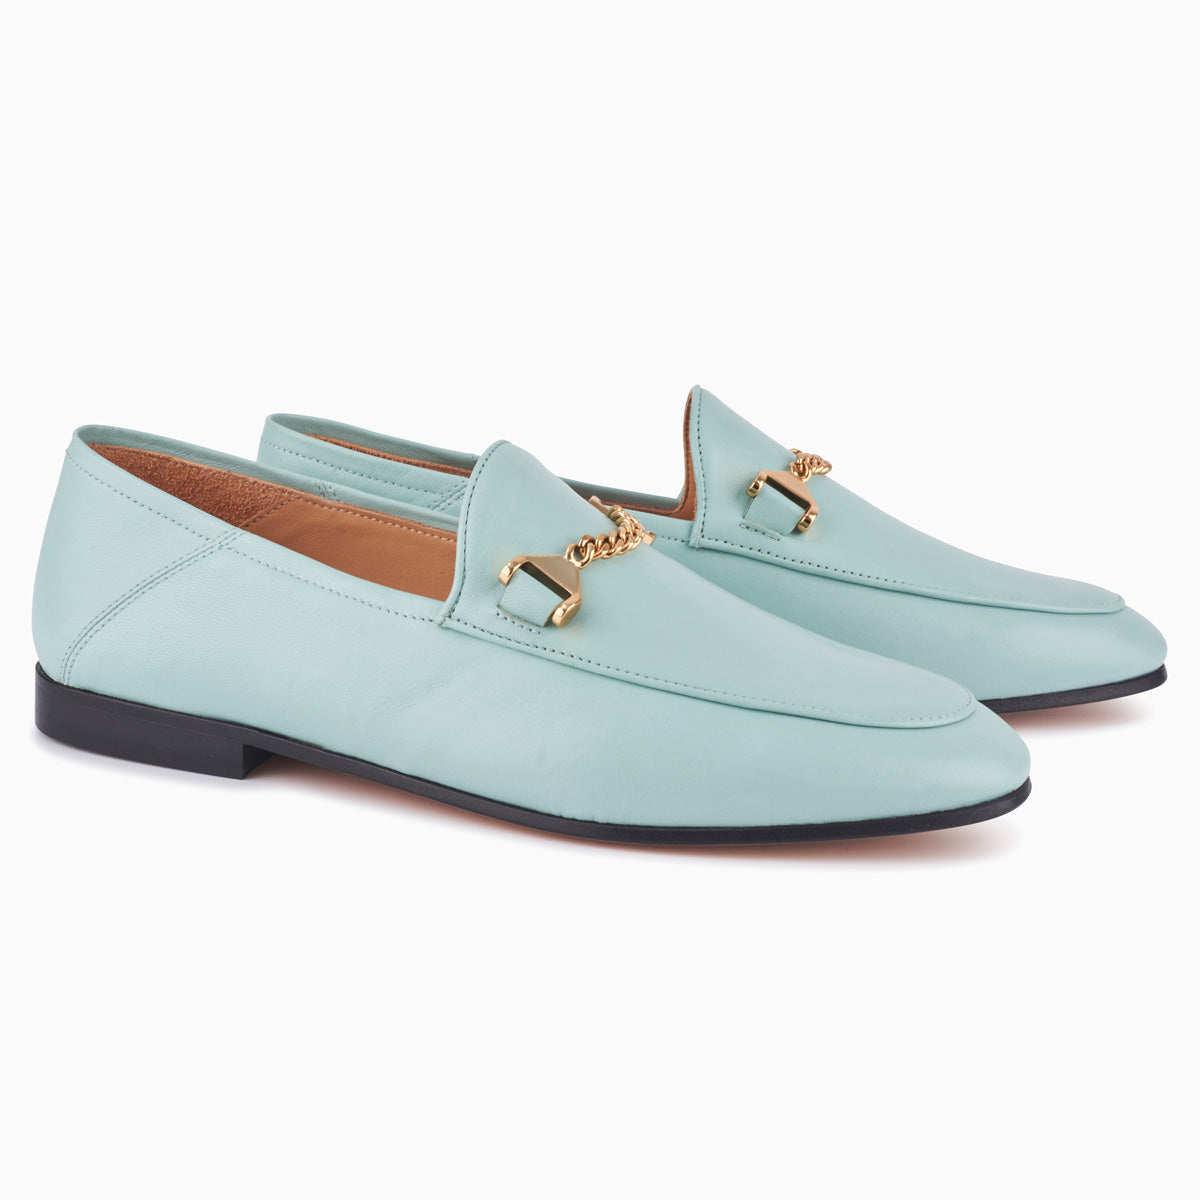 Hyusto Debbie Loafer Mint Glove 3/4 view pair